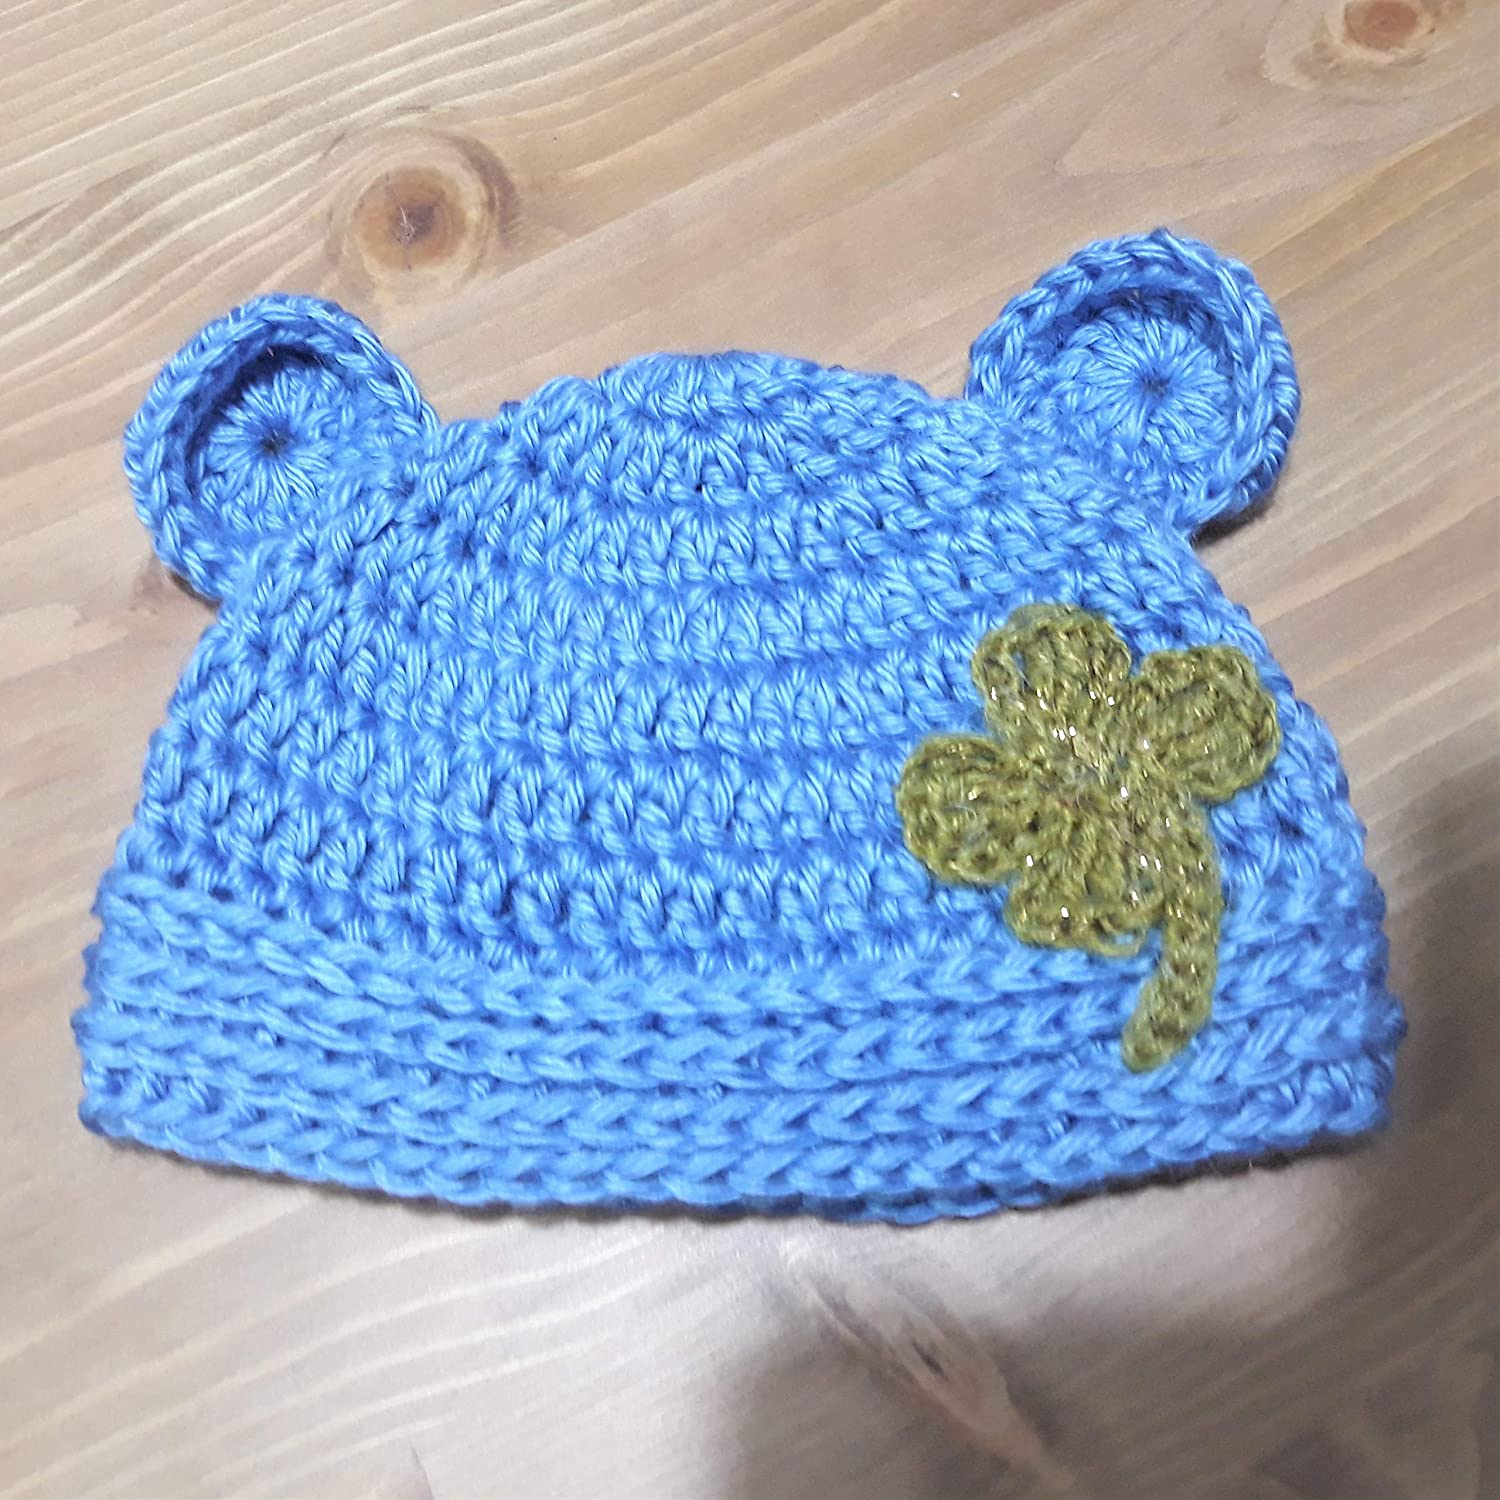 Newborn hat - Baby beanies for Max 68% Max 54% OFF OFF Hats hats Winter b